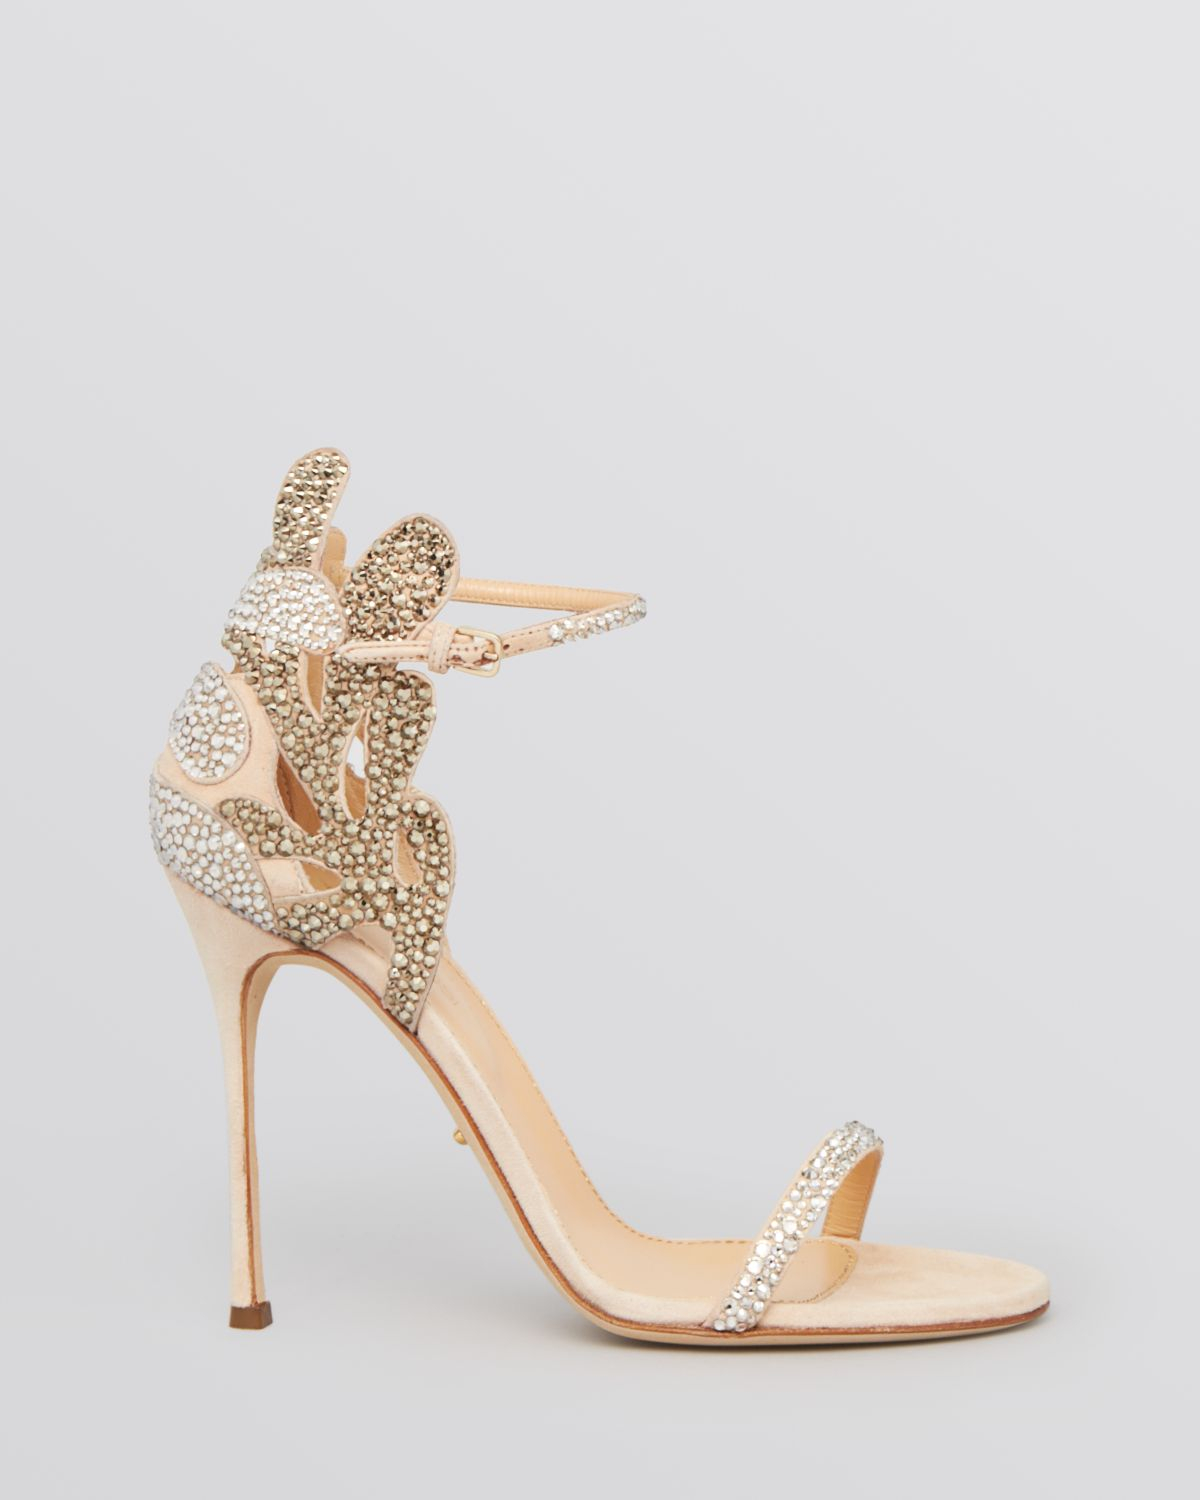 977a6f50aa5b9 Sergio Rossi Ankle Strap Evening Sandals - Matisse Filigree High ...